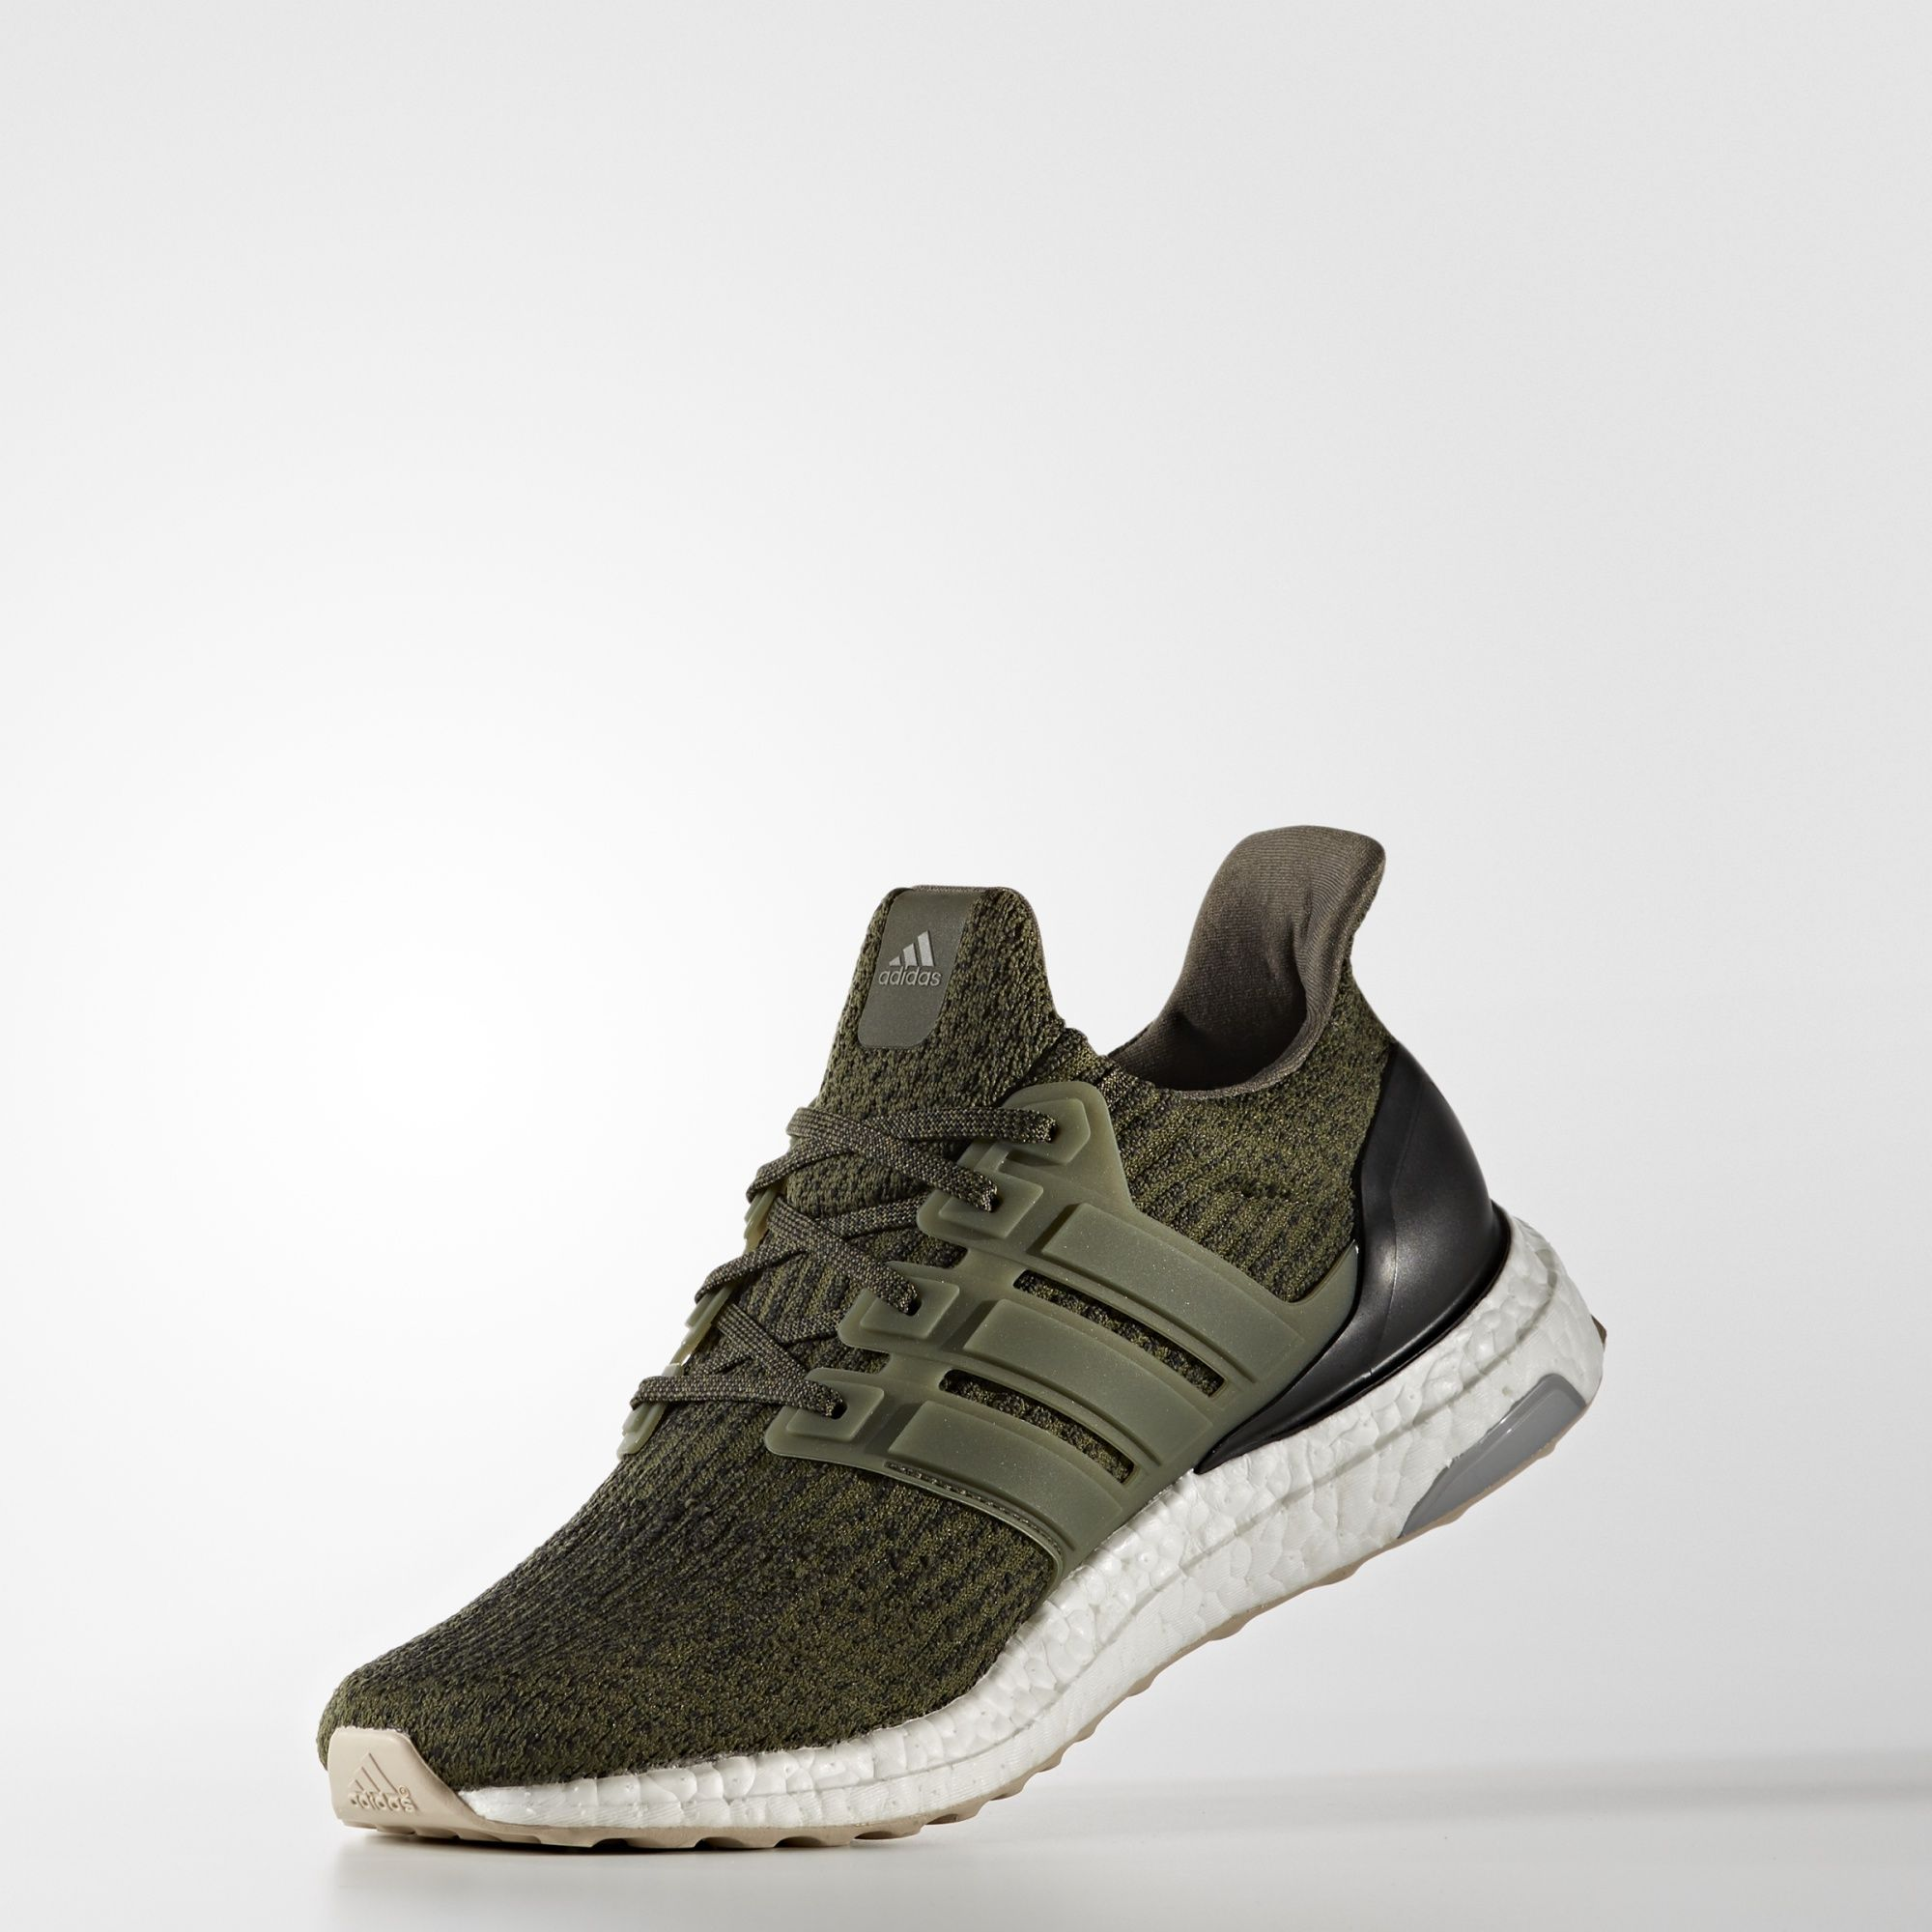 adidas ultra boost night cargo S80637 3